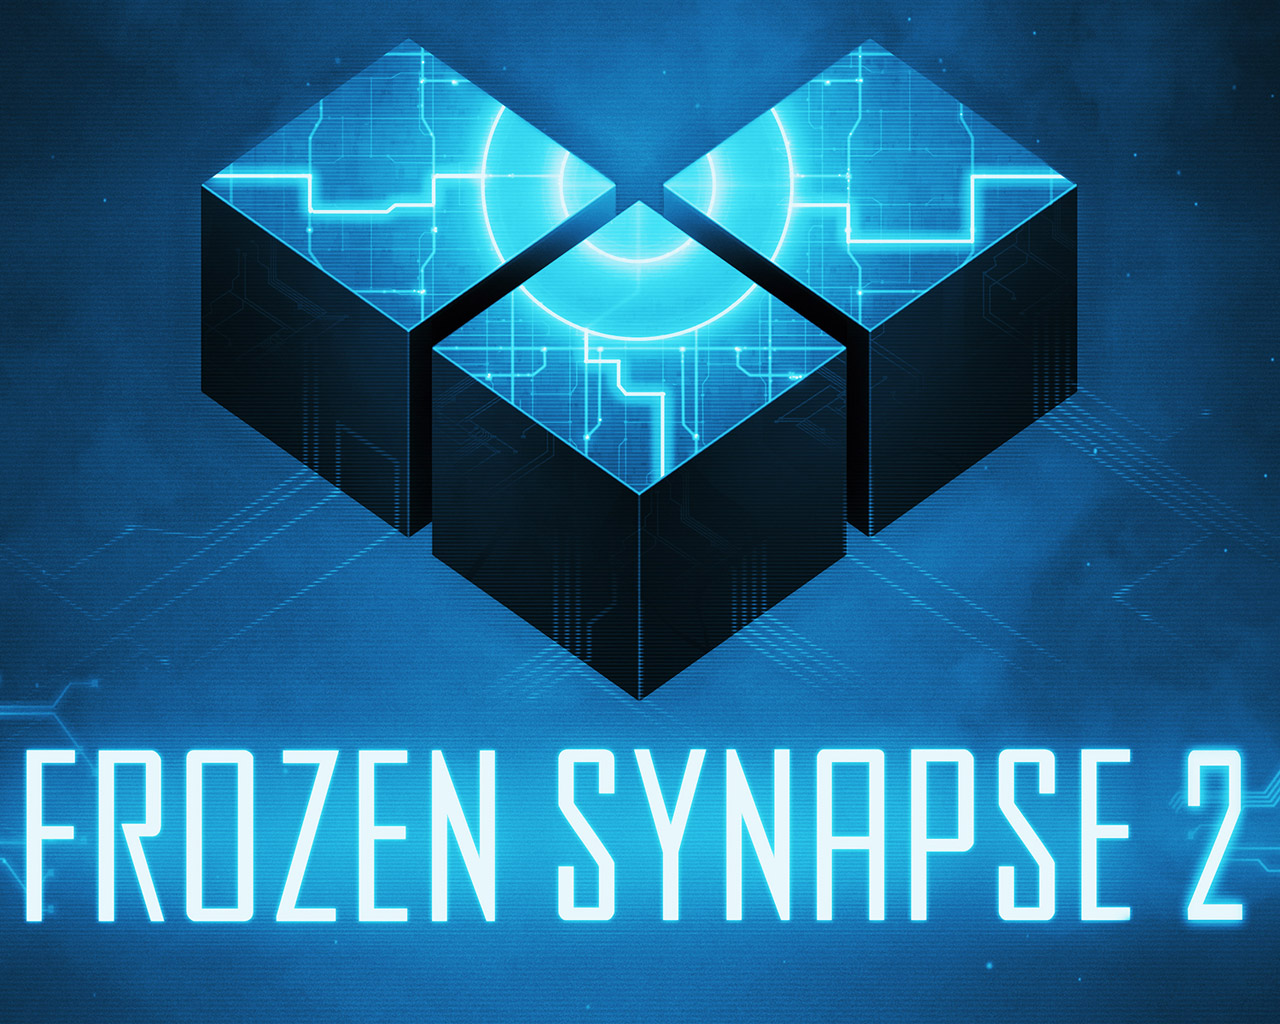 Free Frozen Synapse 2 Wallpaper in 1280x1024